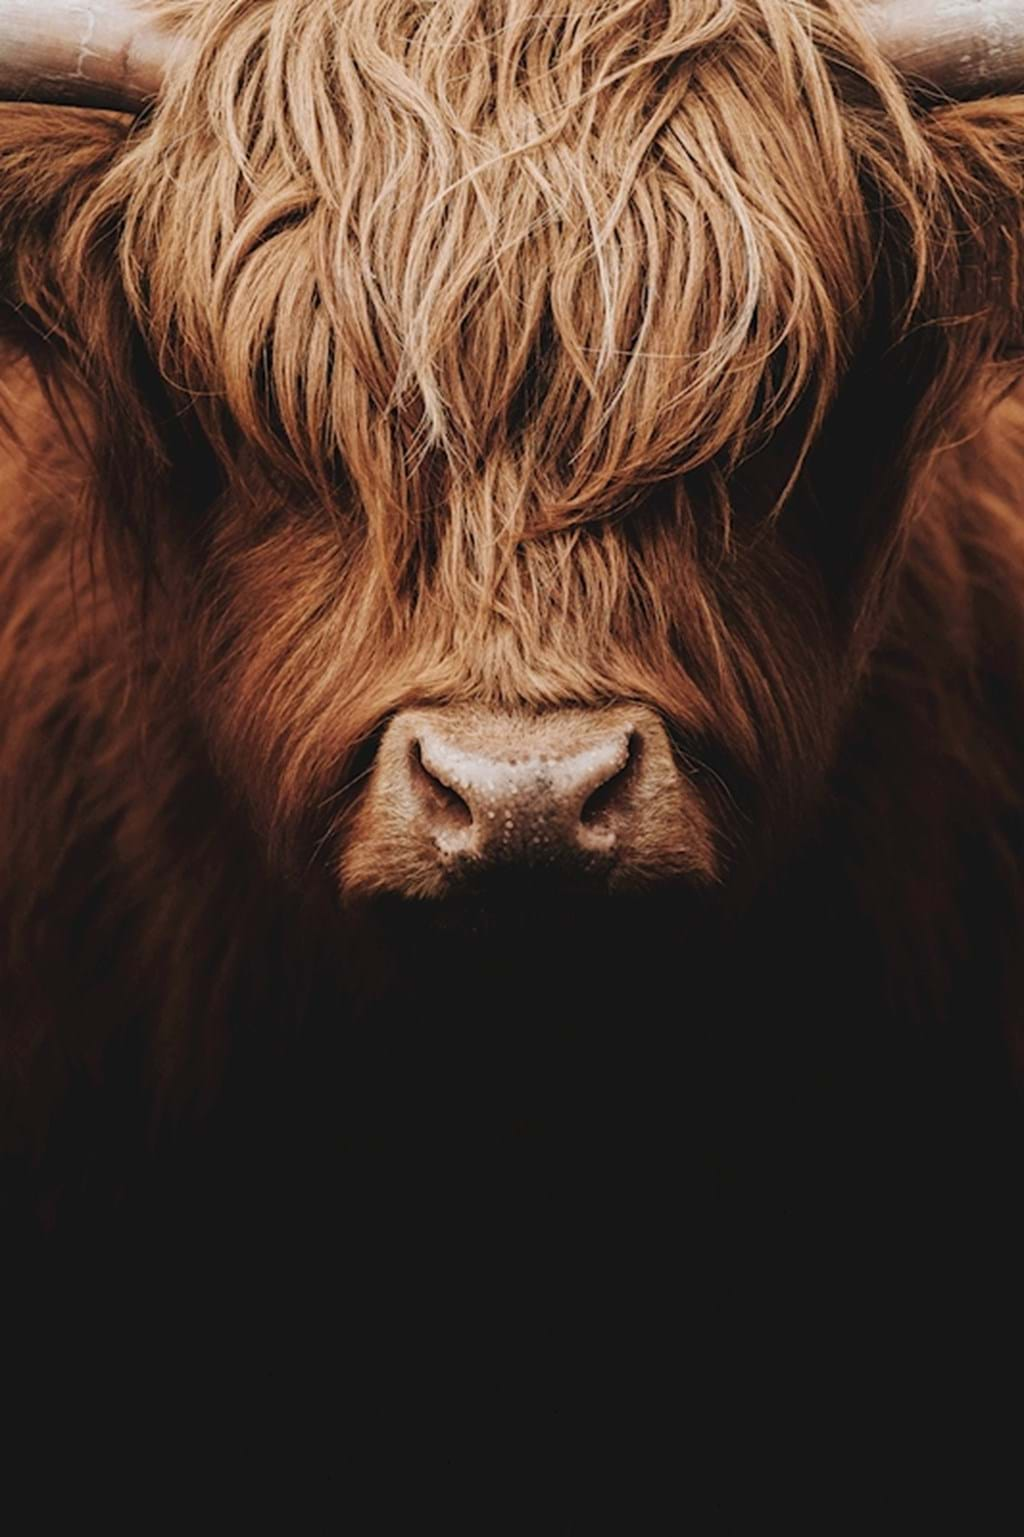 Poster: Like a Boss - This is a very artistic beautiful portrait of a highland cattle. The fur i ...